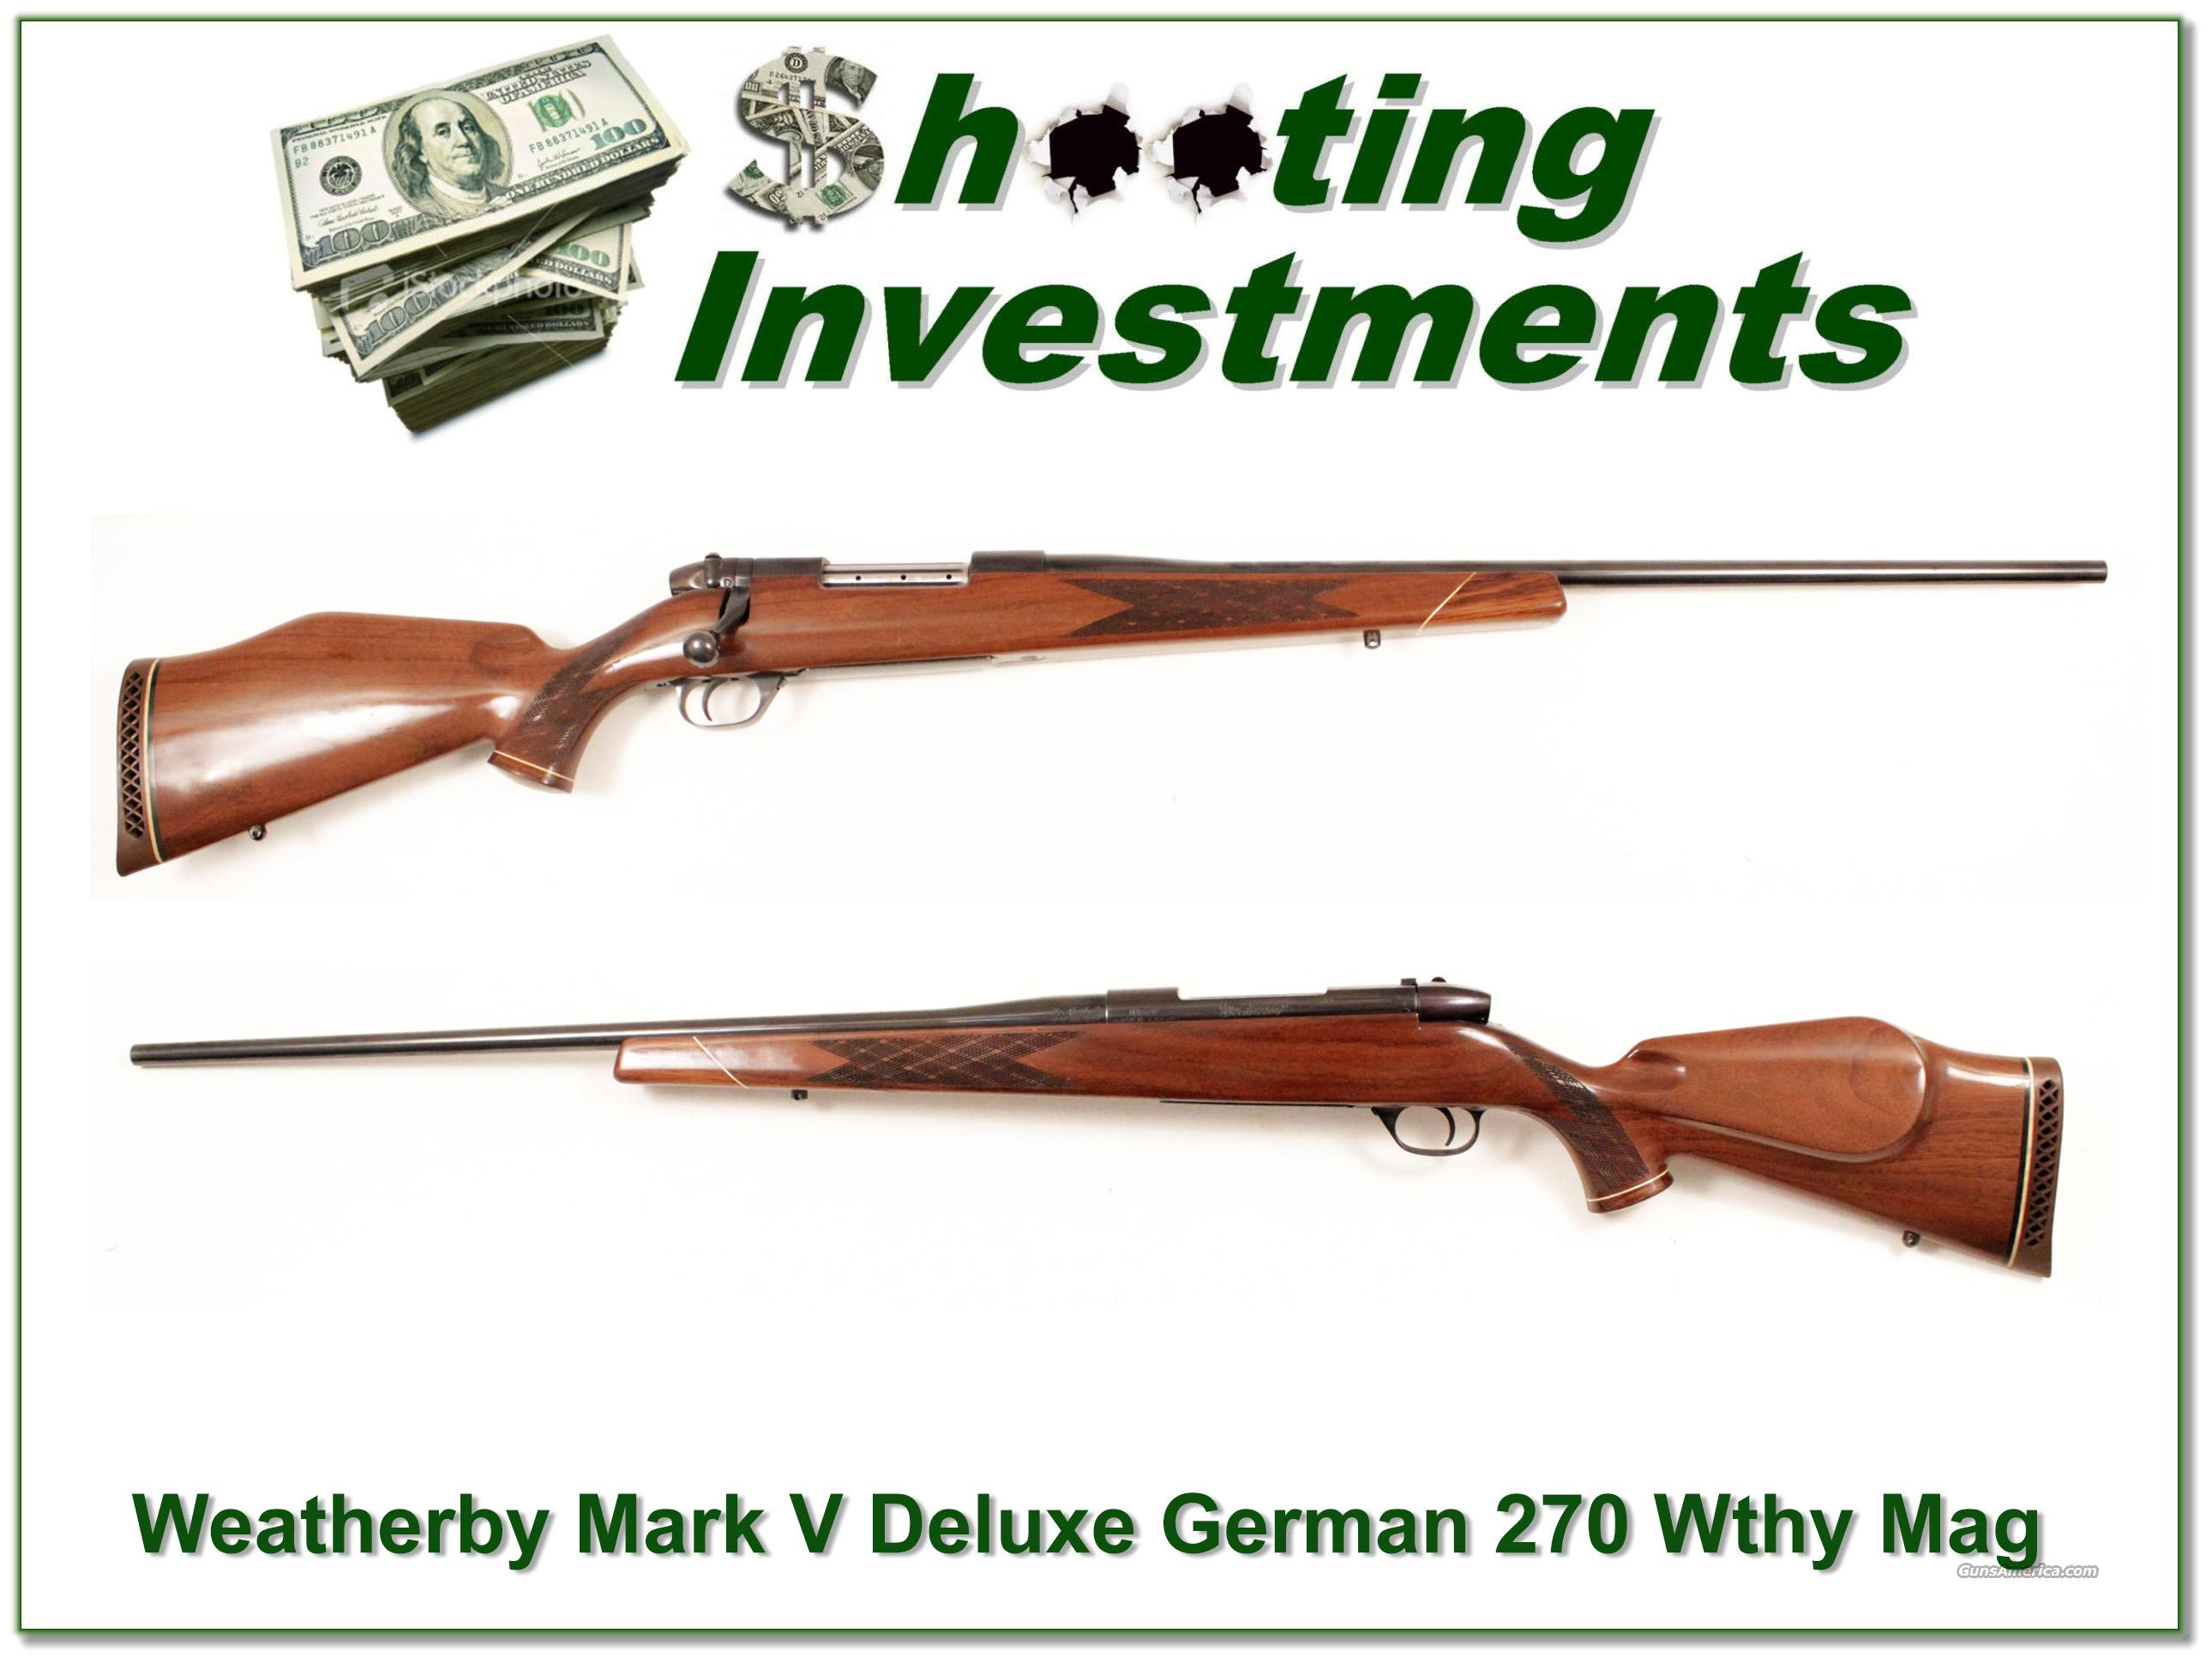 Weatherby Mark V Deluxe 270 Wthy German Exc Cond!  Guns > Rifles > Weatherby Rifles > Sporting